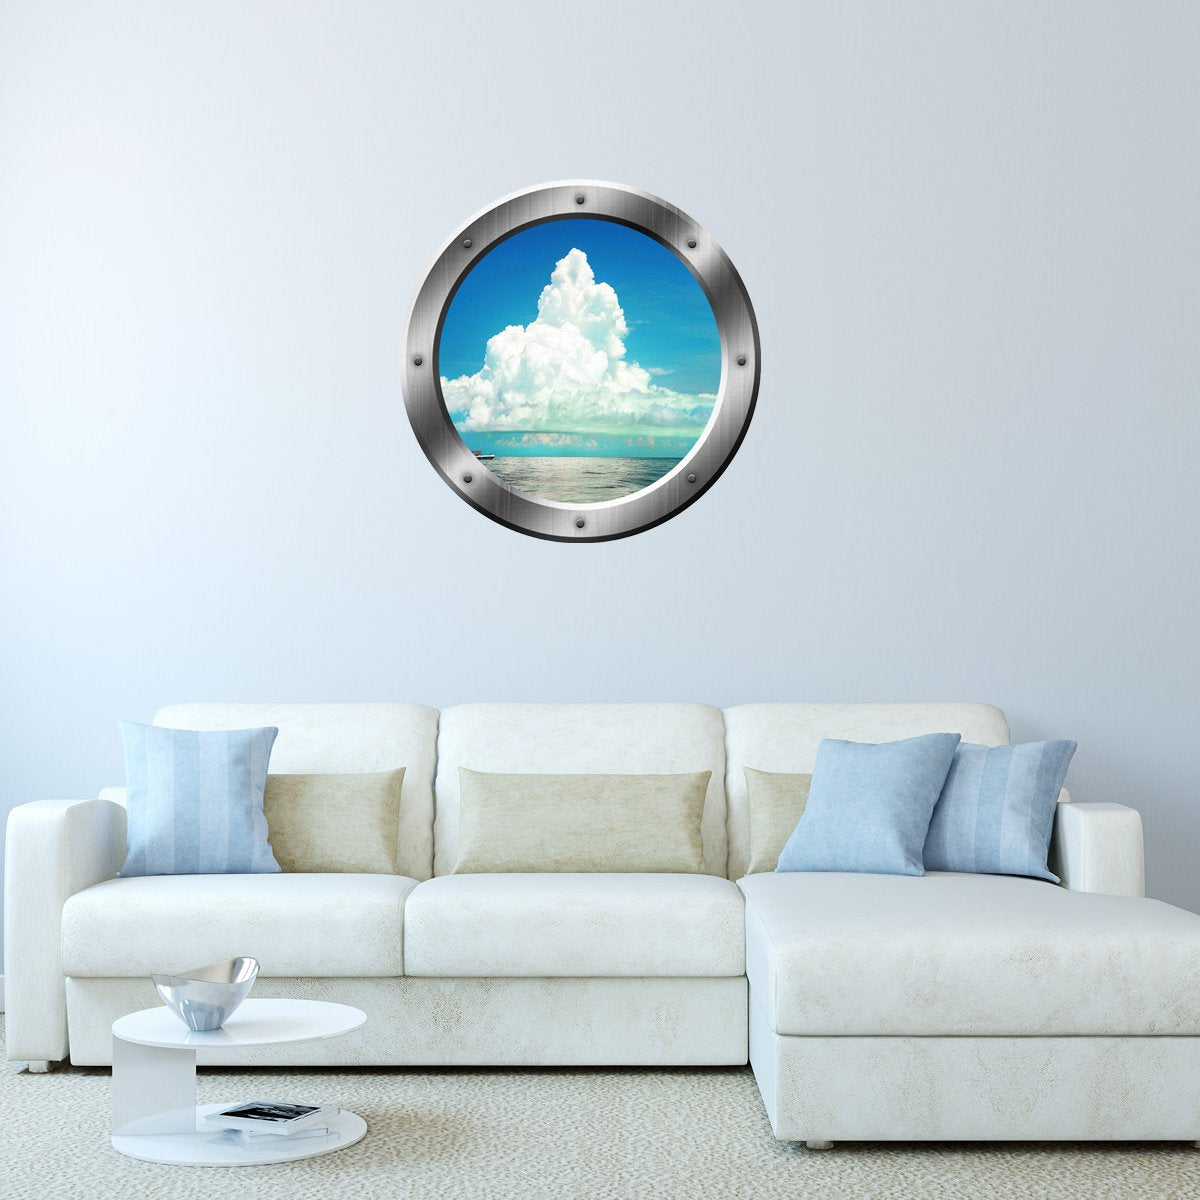 VWAQ Ocean and Clouds View Peel and Stick Silver Porthole Vinyl Wall Decal - SP40 - VWAQ Vinyl Wall Art Quotes and Prints